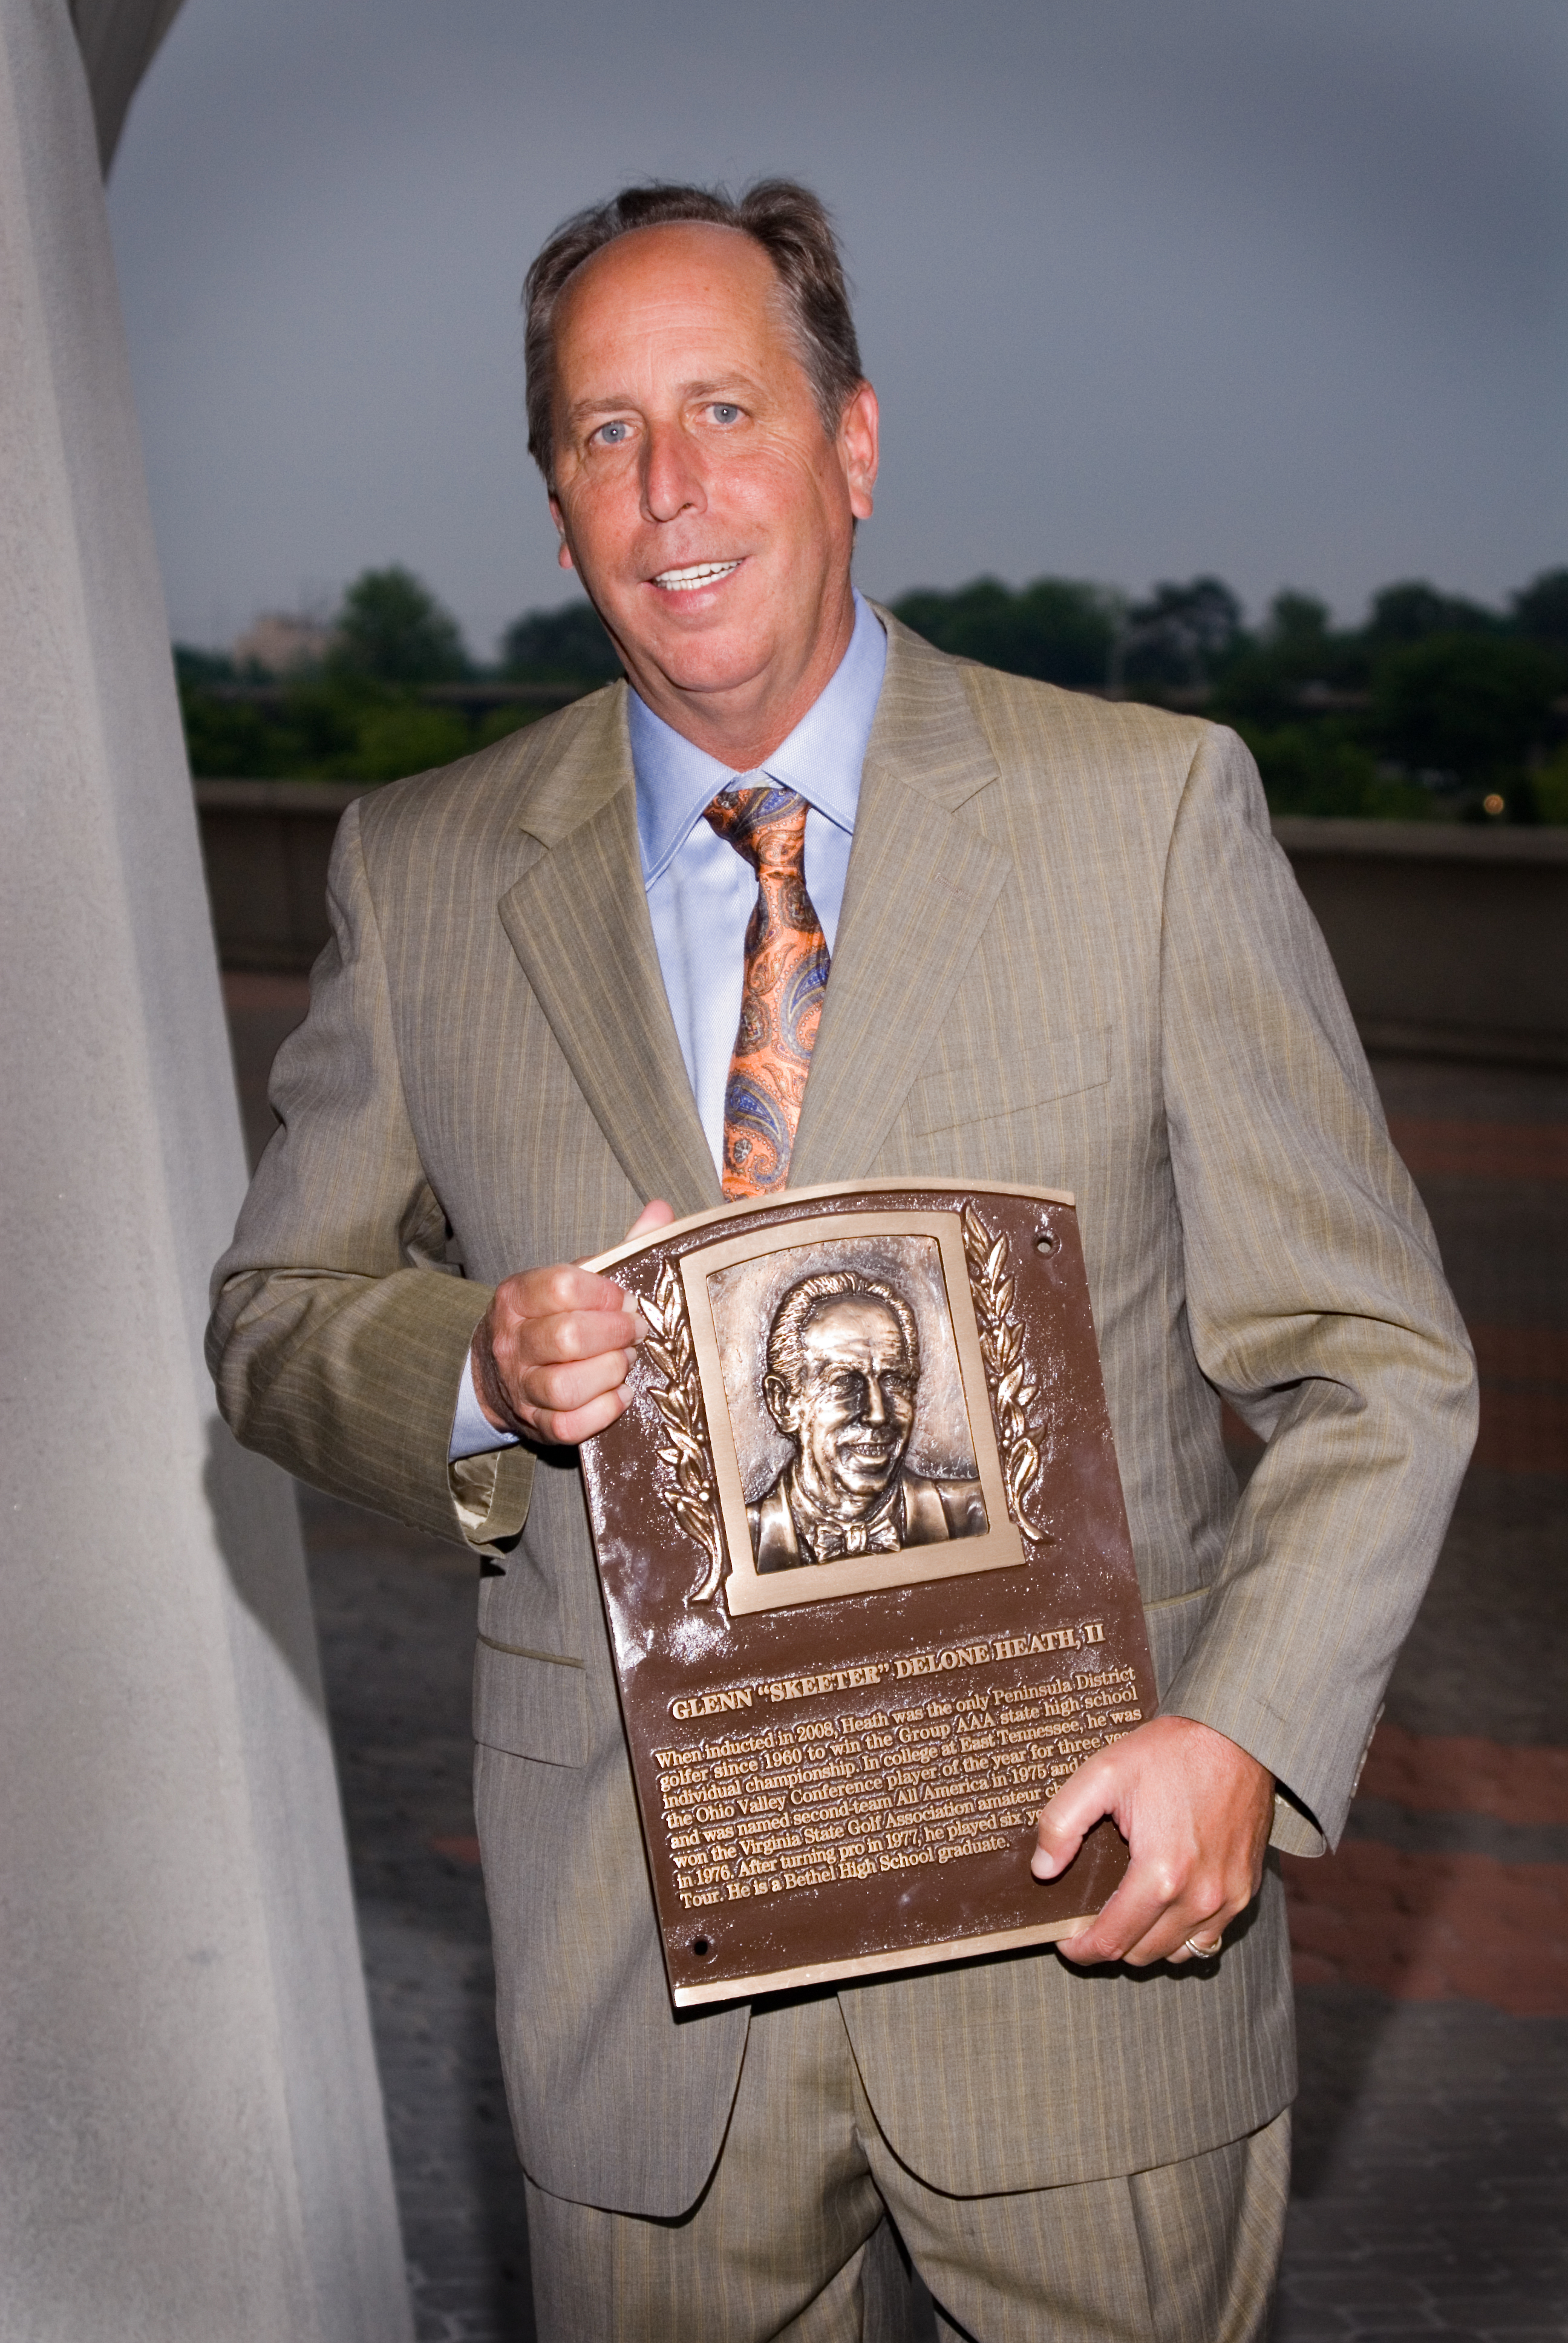 Skeeter with Bronze Plaque